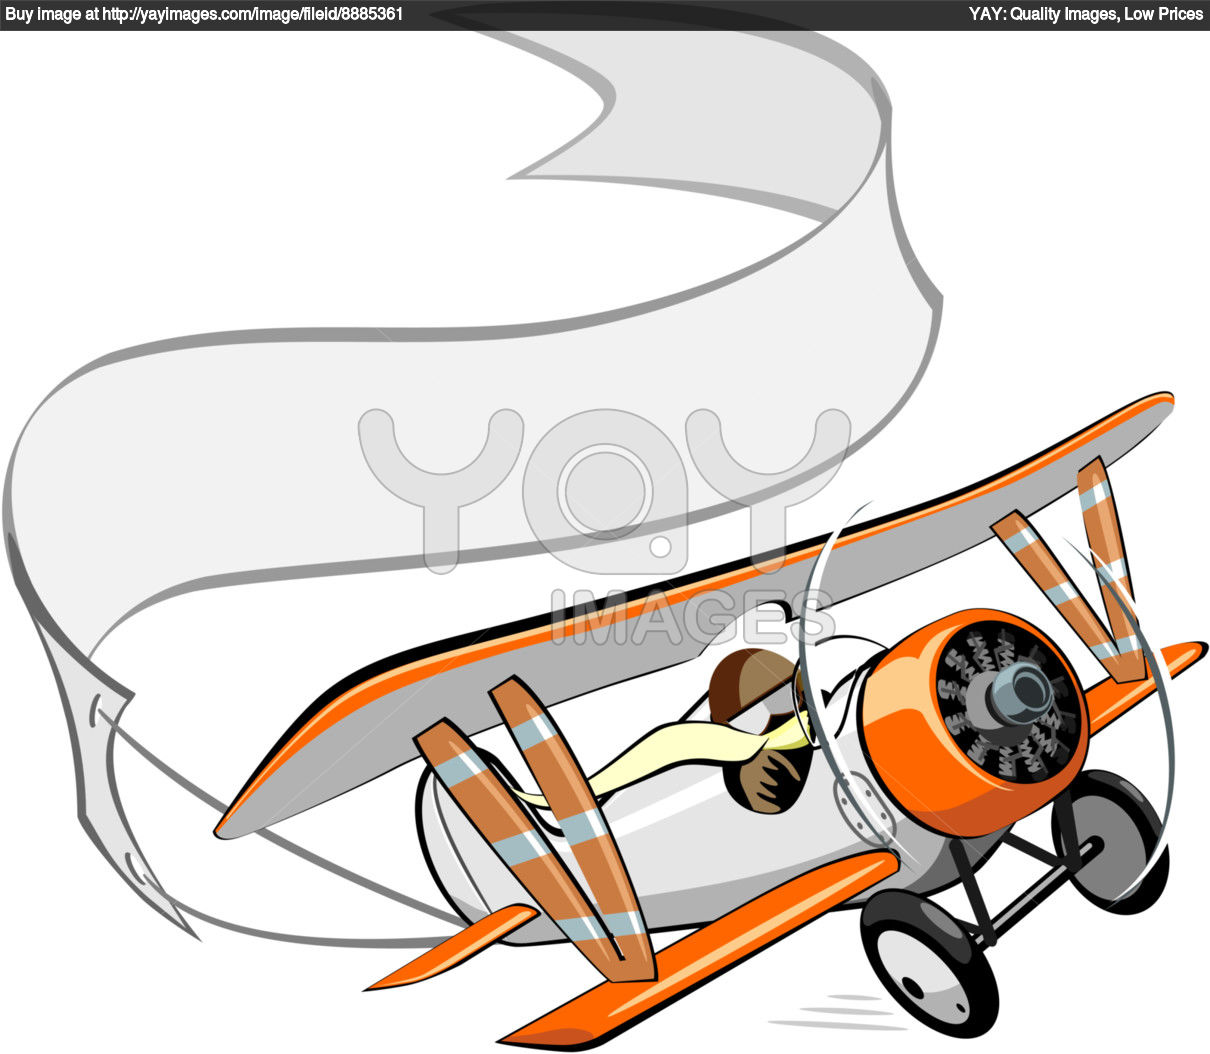 Airplane clipart with banners vector transparent download Airplane With Banner Vector | Free download best Airplane With ... vector transparent download